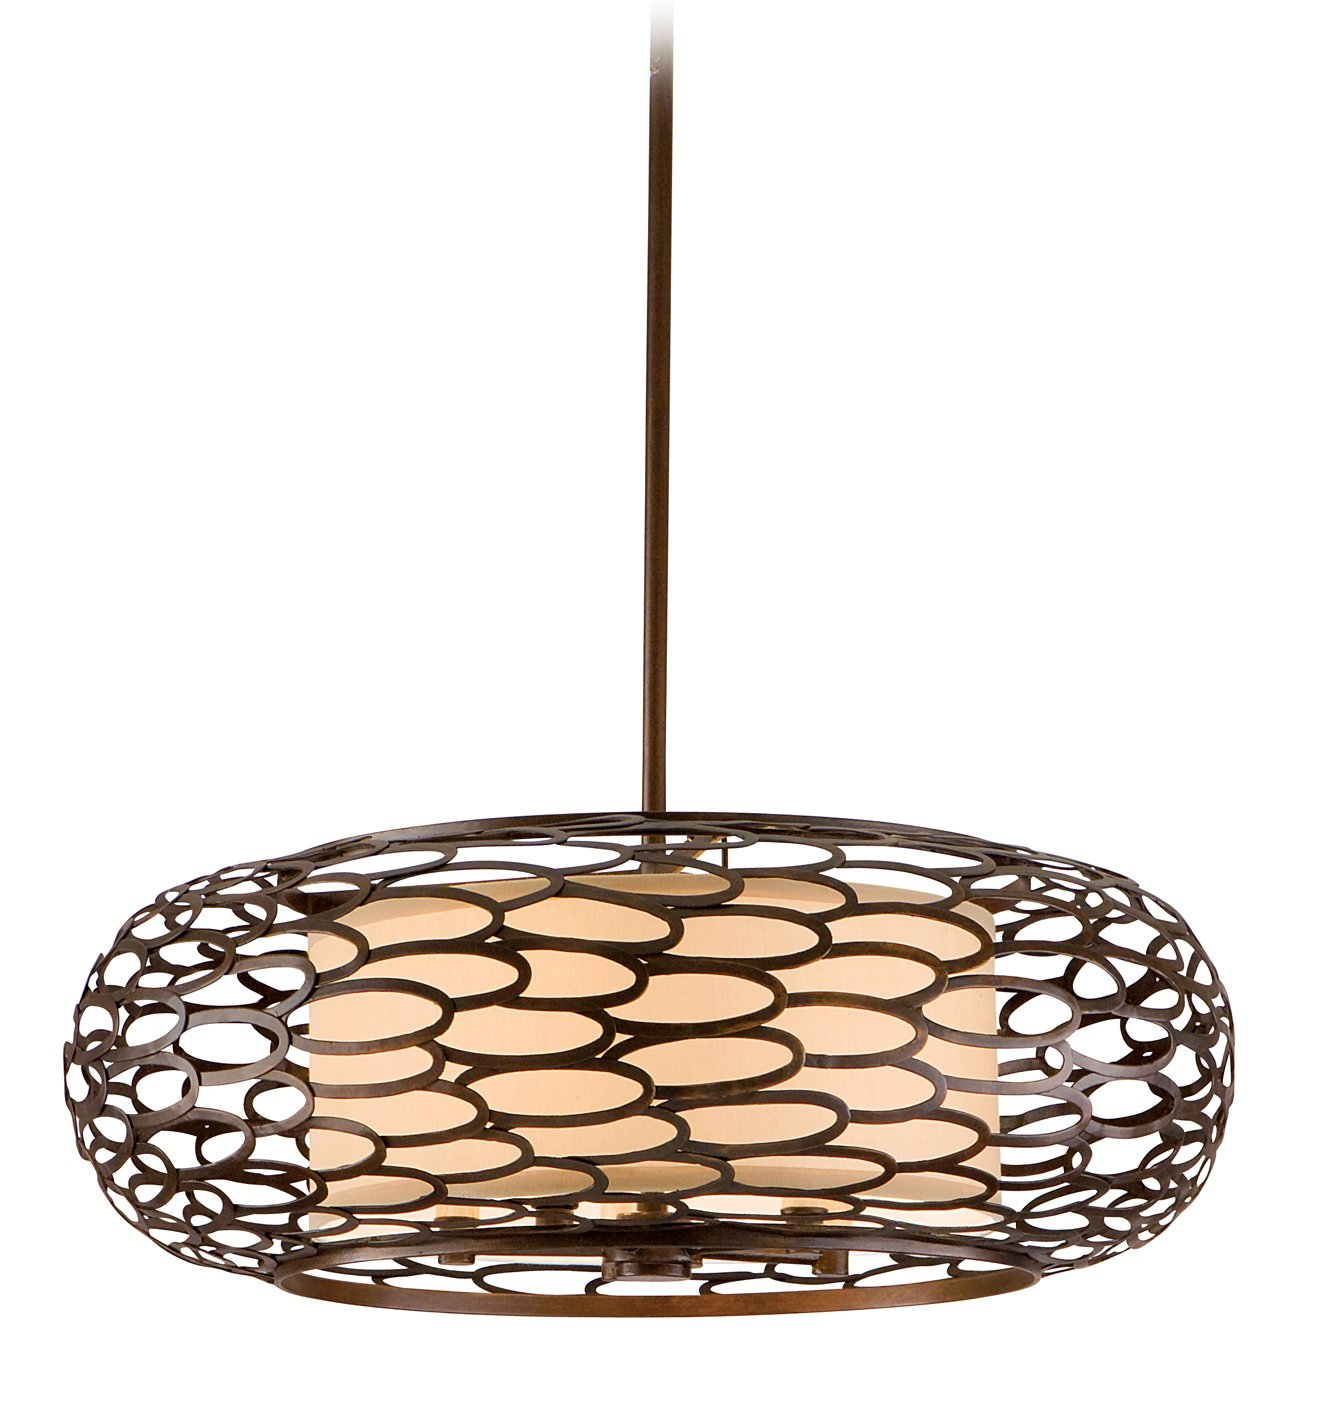 Corbett Lighting 79-45 Five Light Hanging Pendant From The Cesto Collection, Napoli Bronze